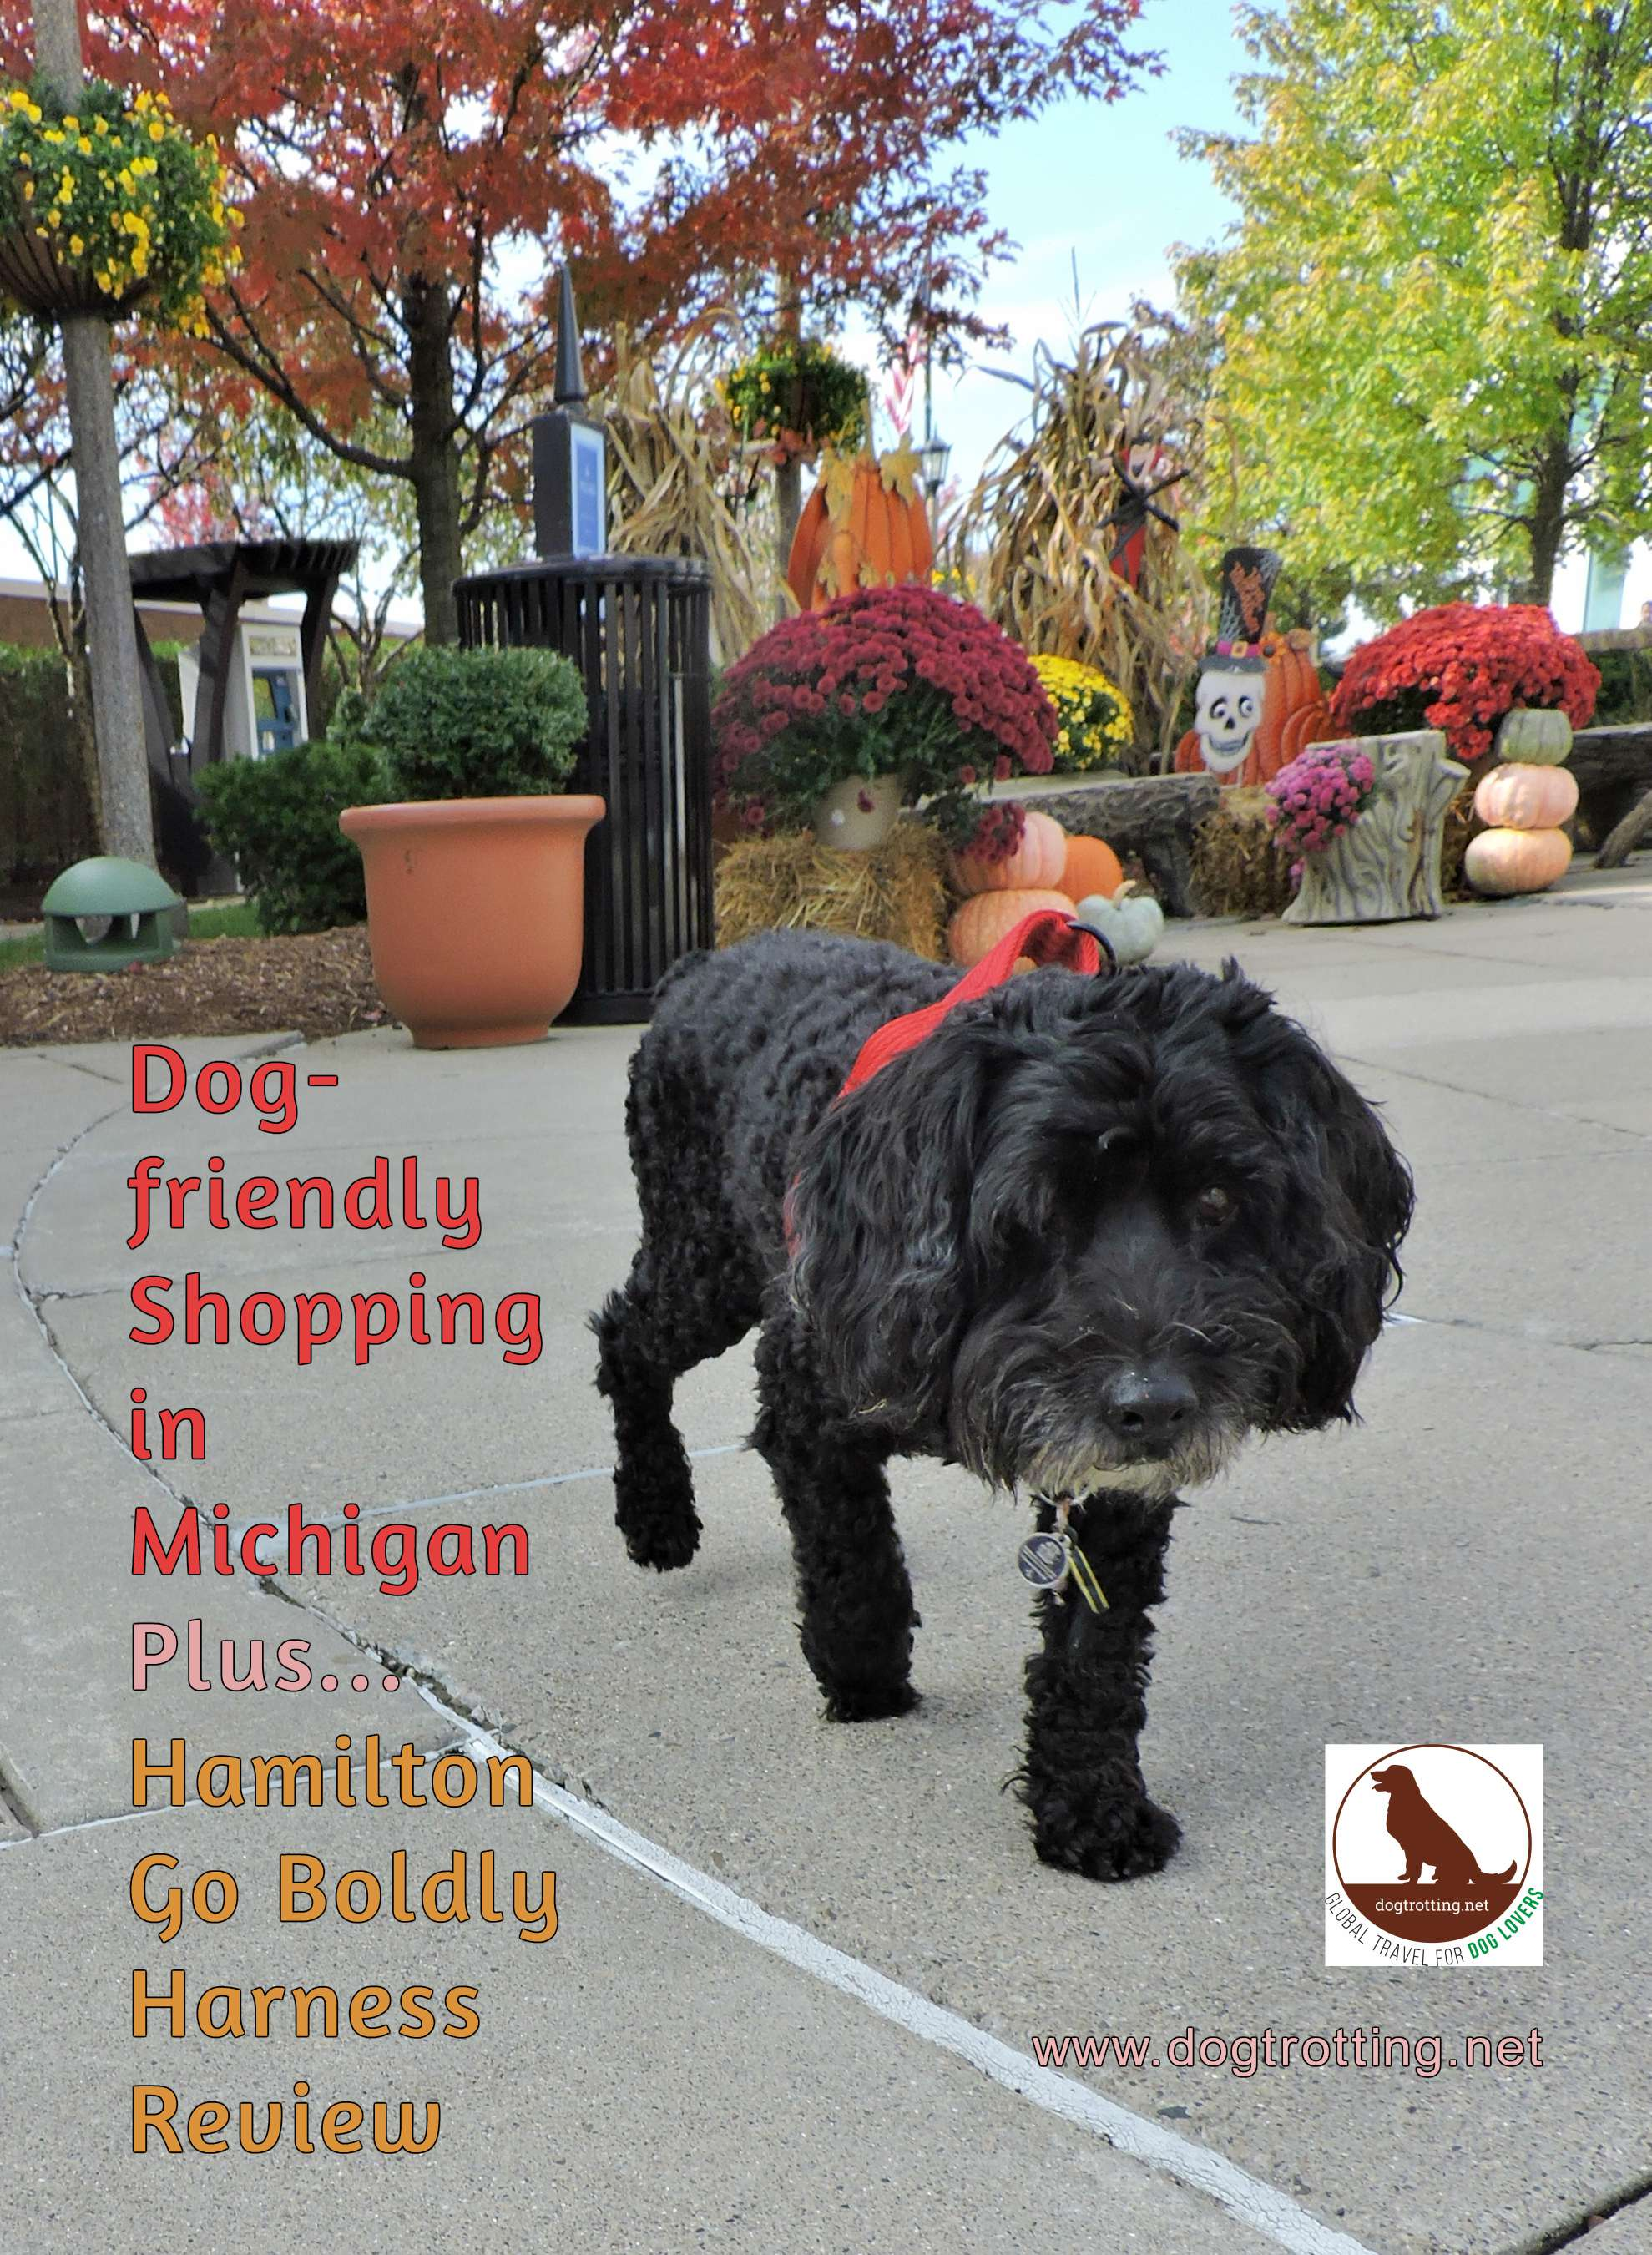 cute black terrier at Michigan outdoor mall with text: dog-friendly shopping in Michigan